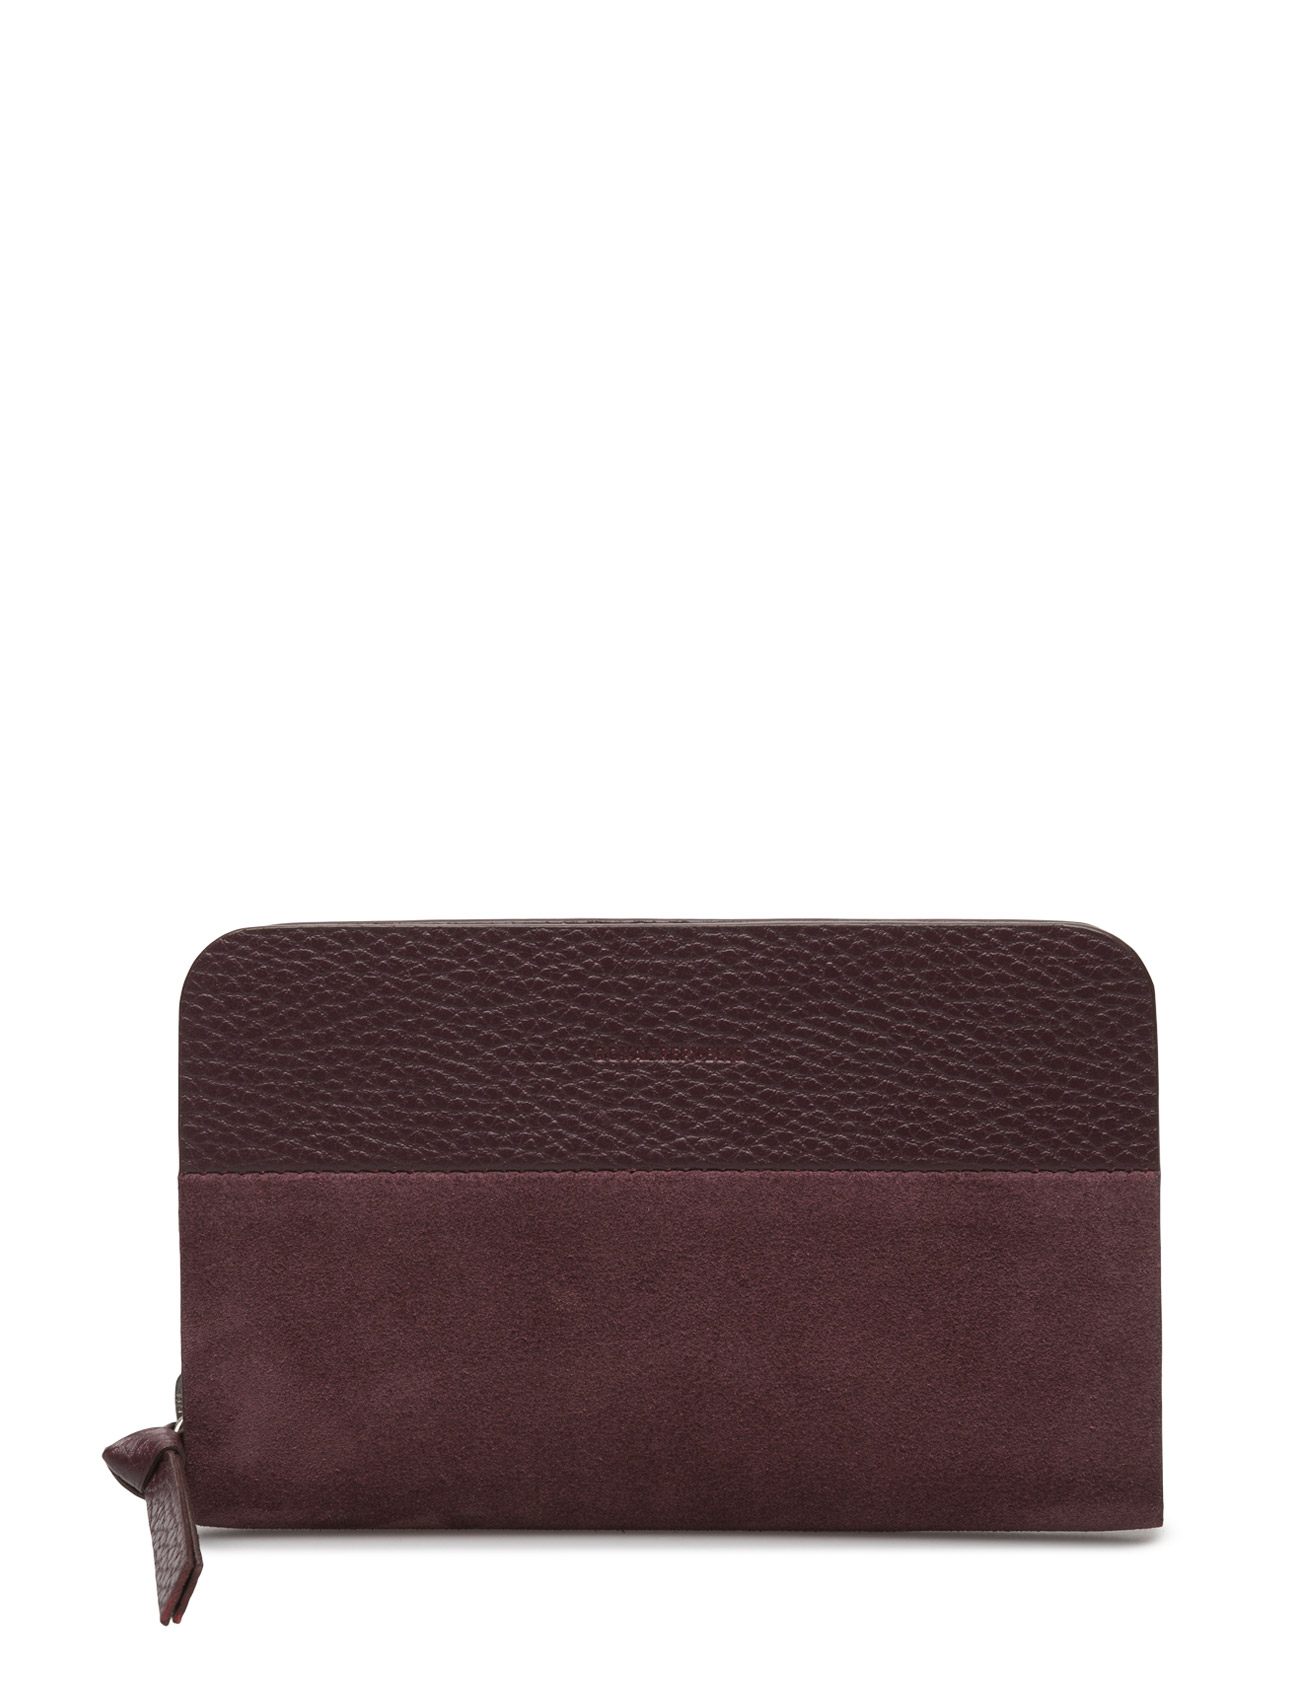 Galax Wallet Miniature Suede Royal RepubliQ Punge til Damer i Bordeaux